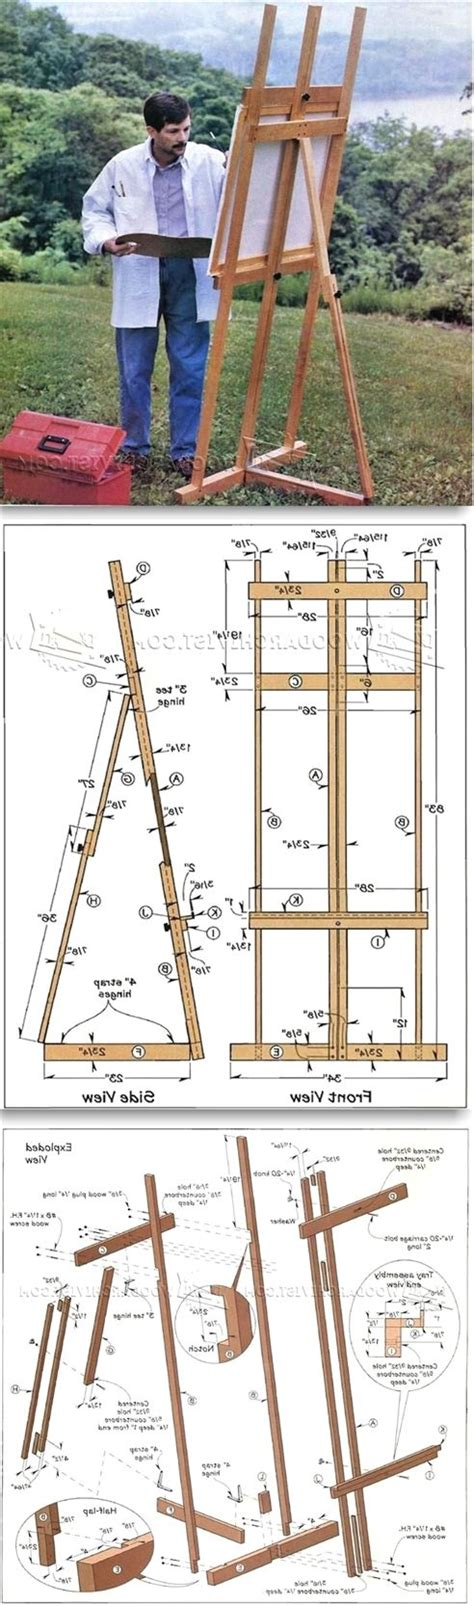 Easel-Plans-Woodworking